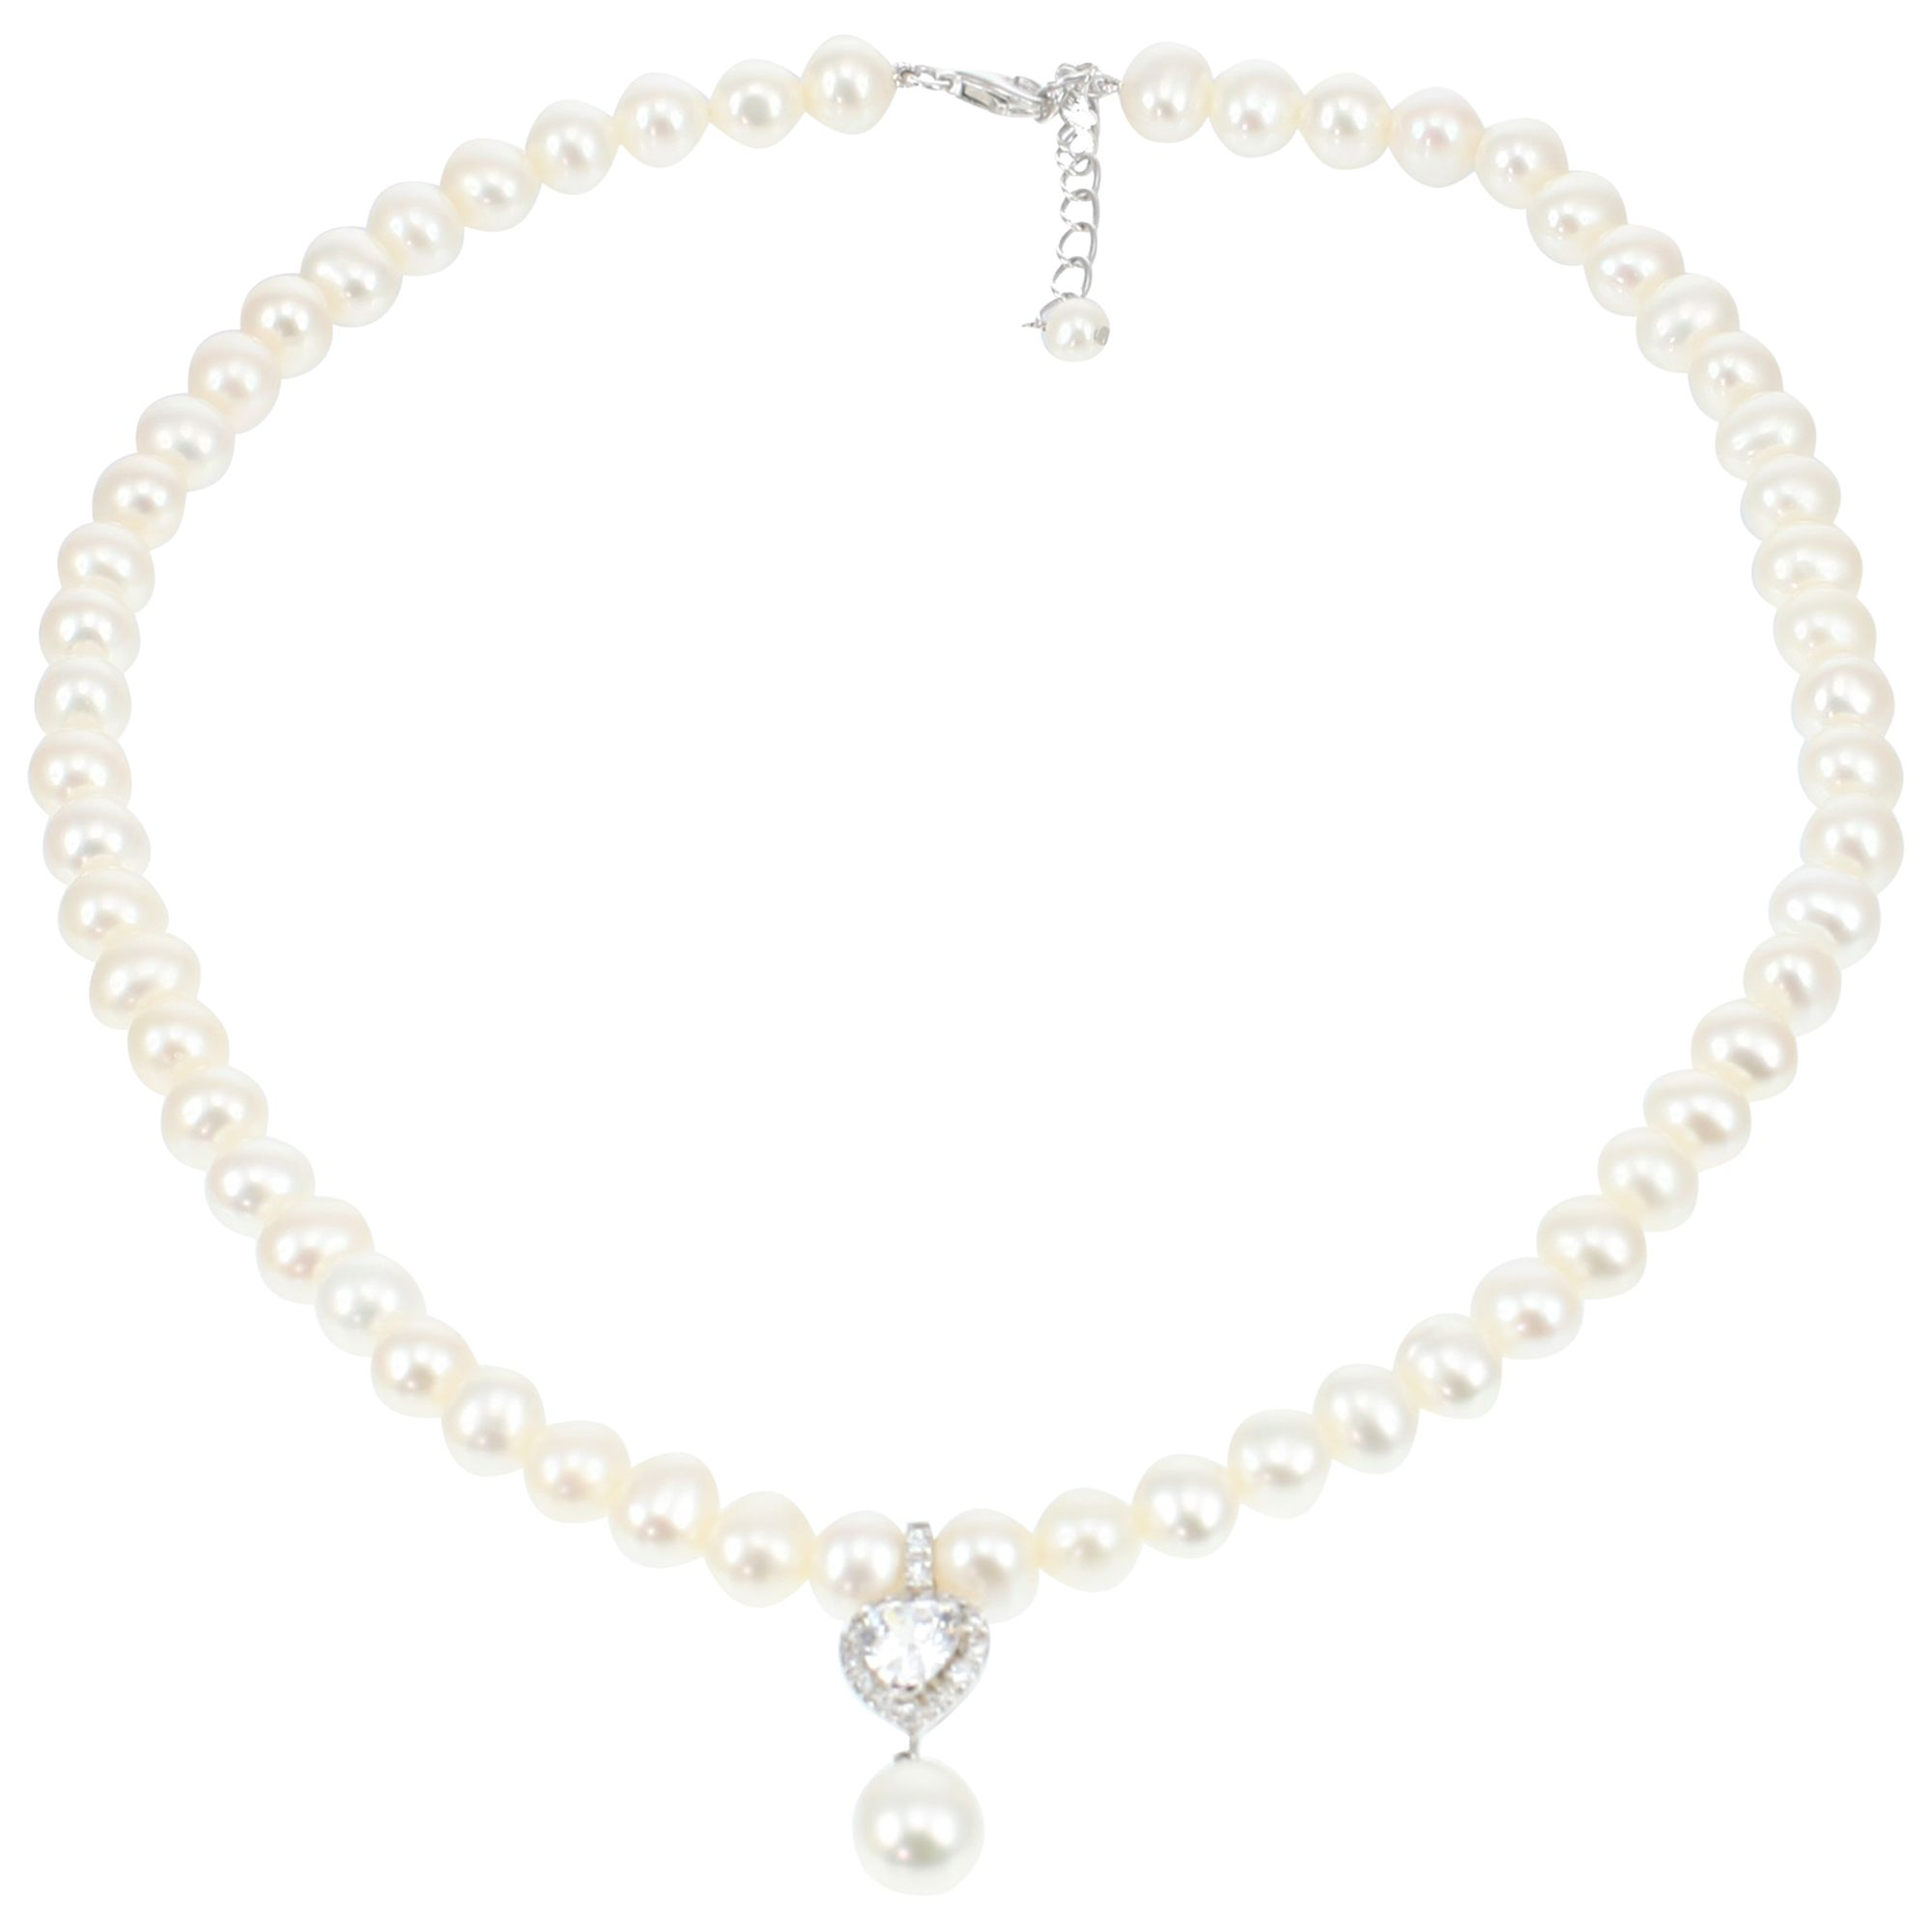 Lido Pearls Lido Pearls Heart Drop Pearl Necklace, White